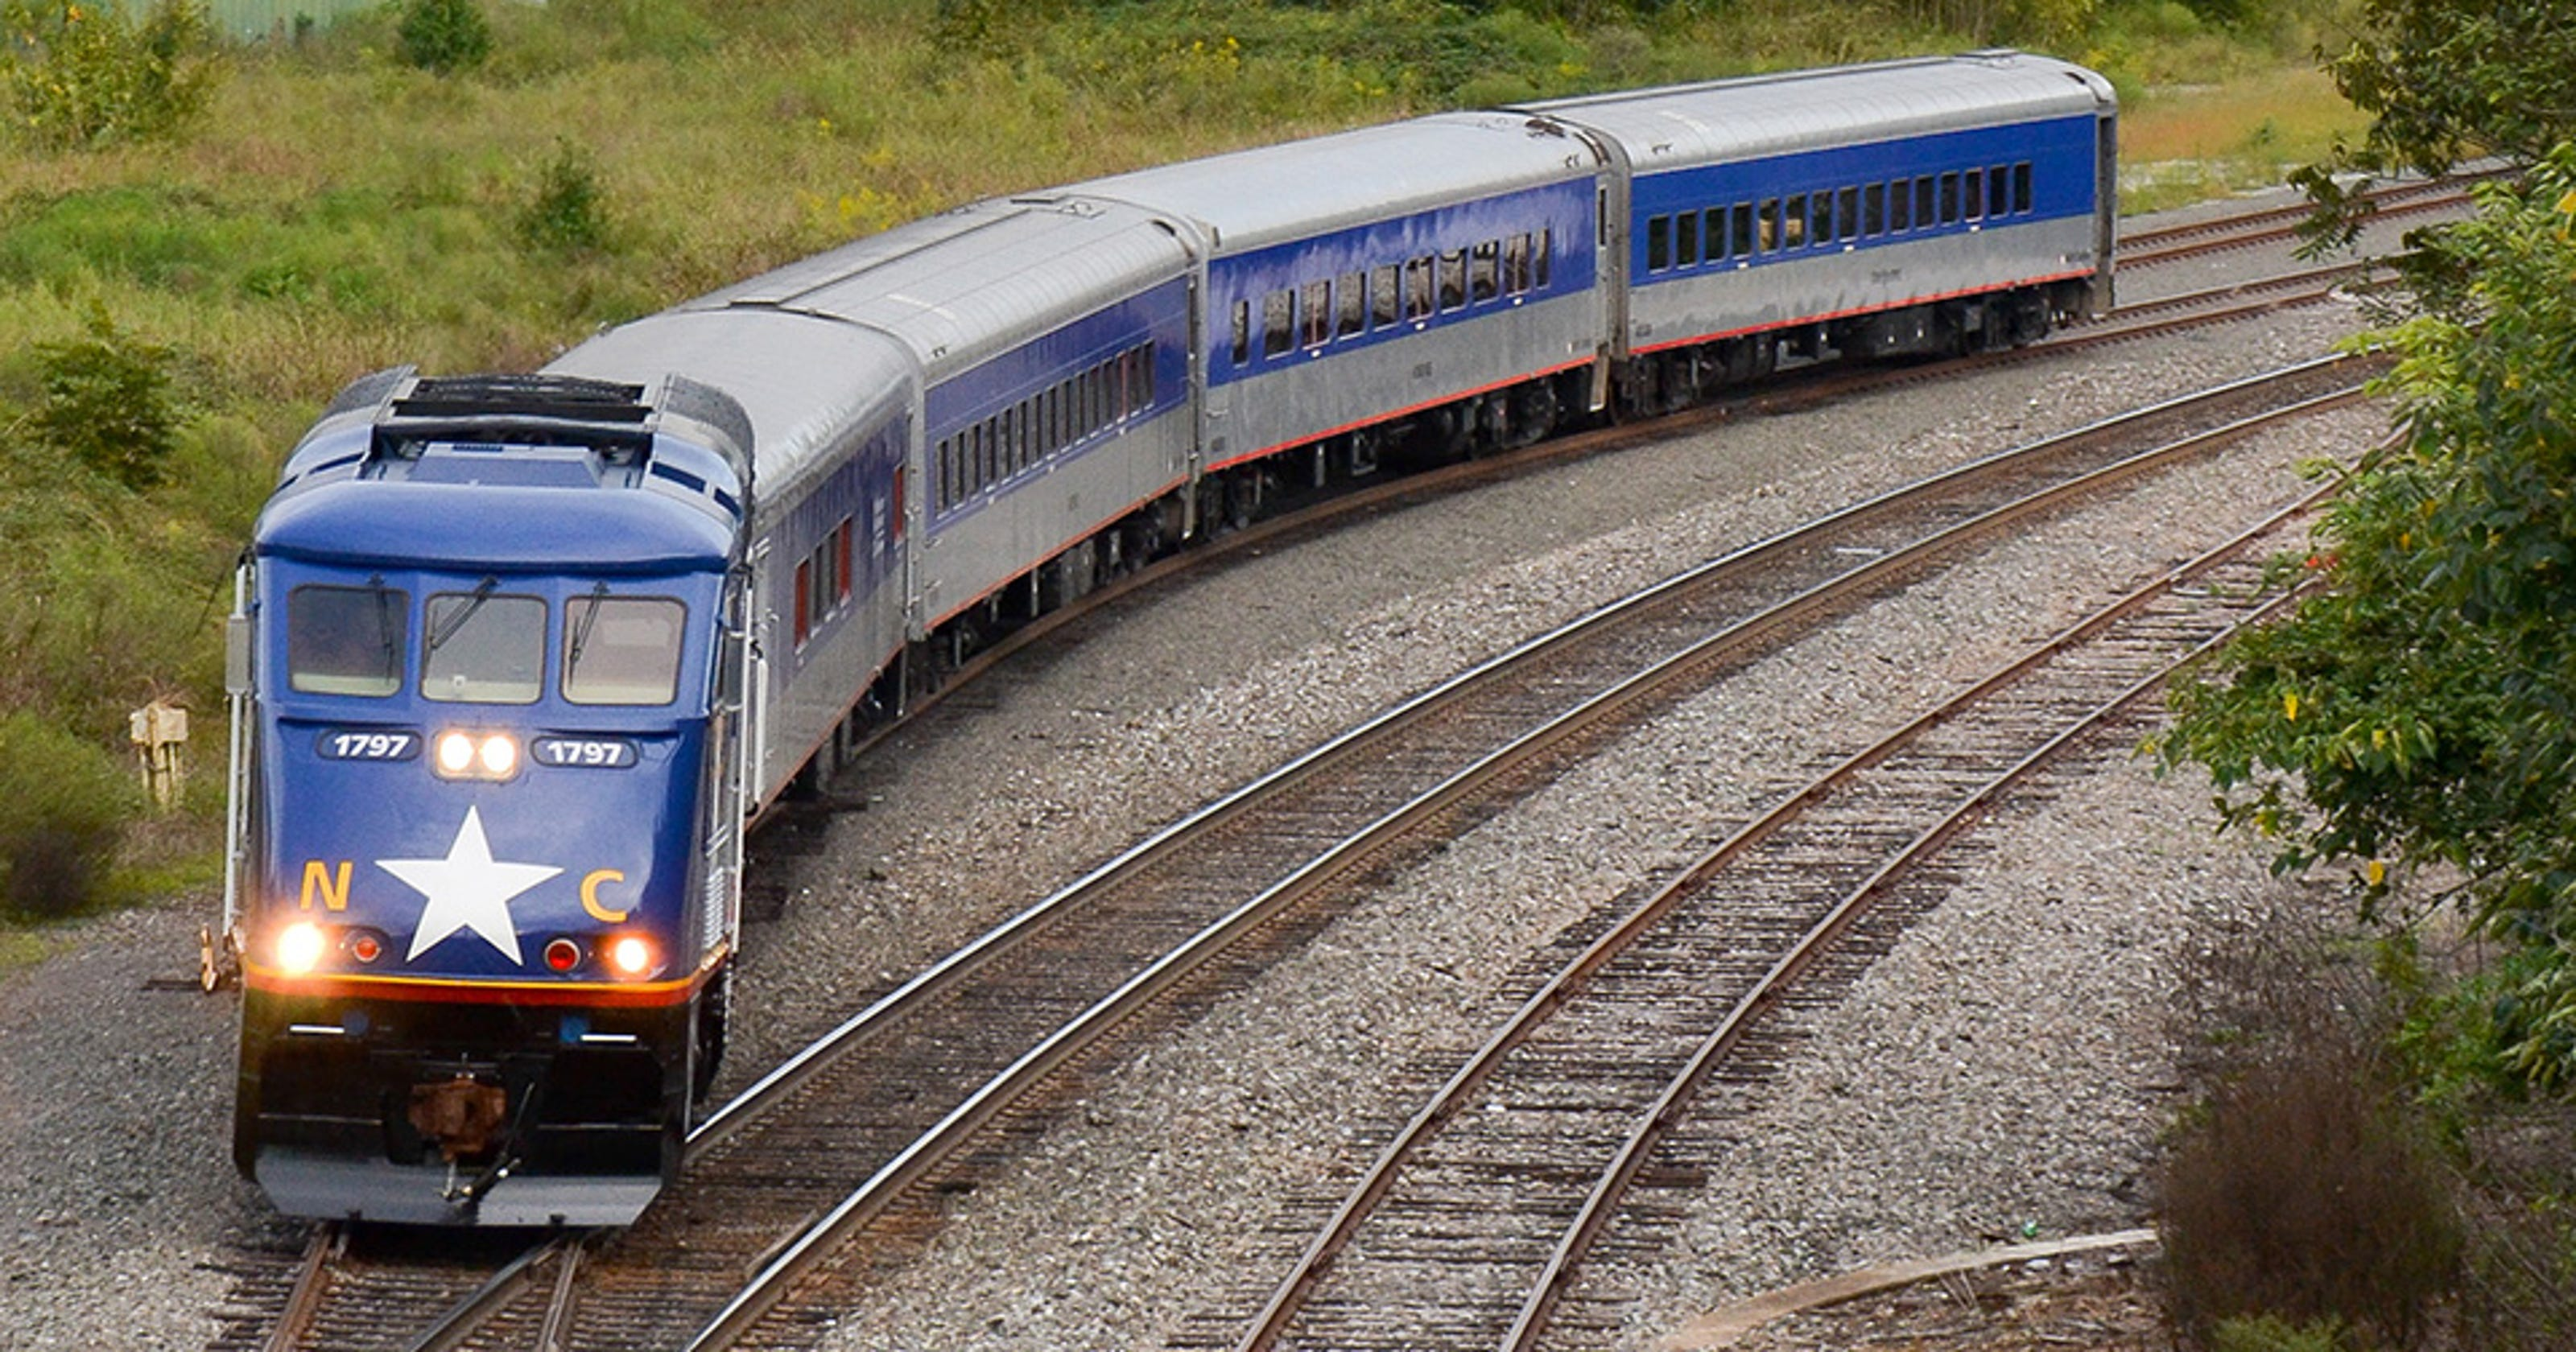 4 Amtrak deaths reported in two days; company encourages rail safety